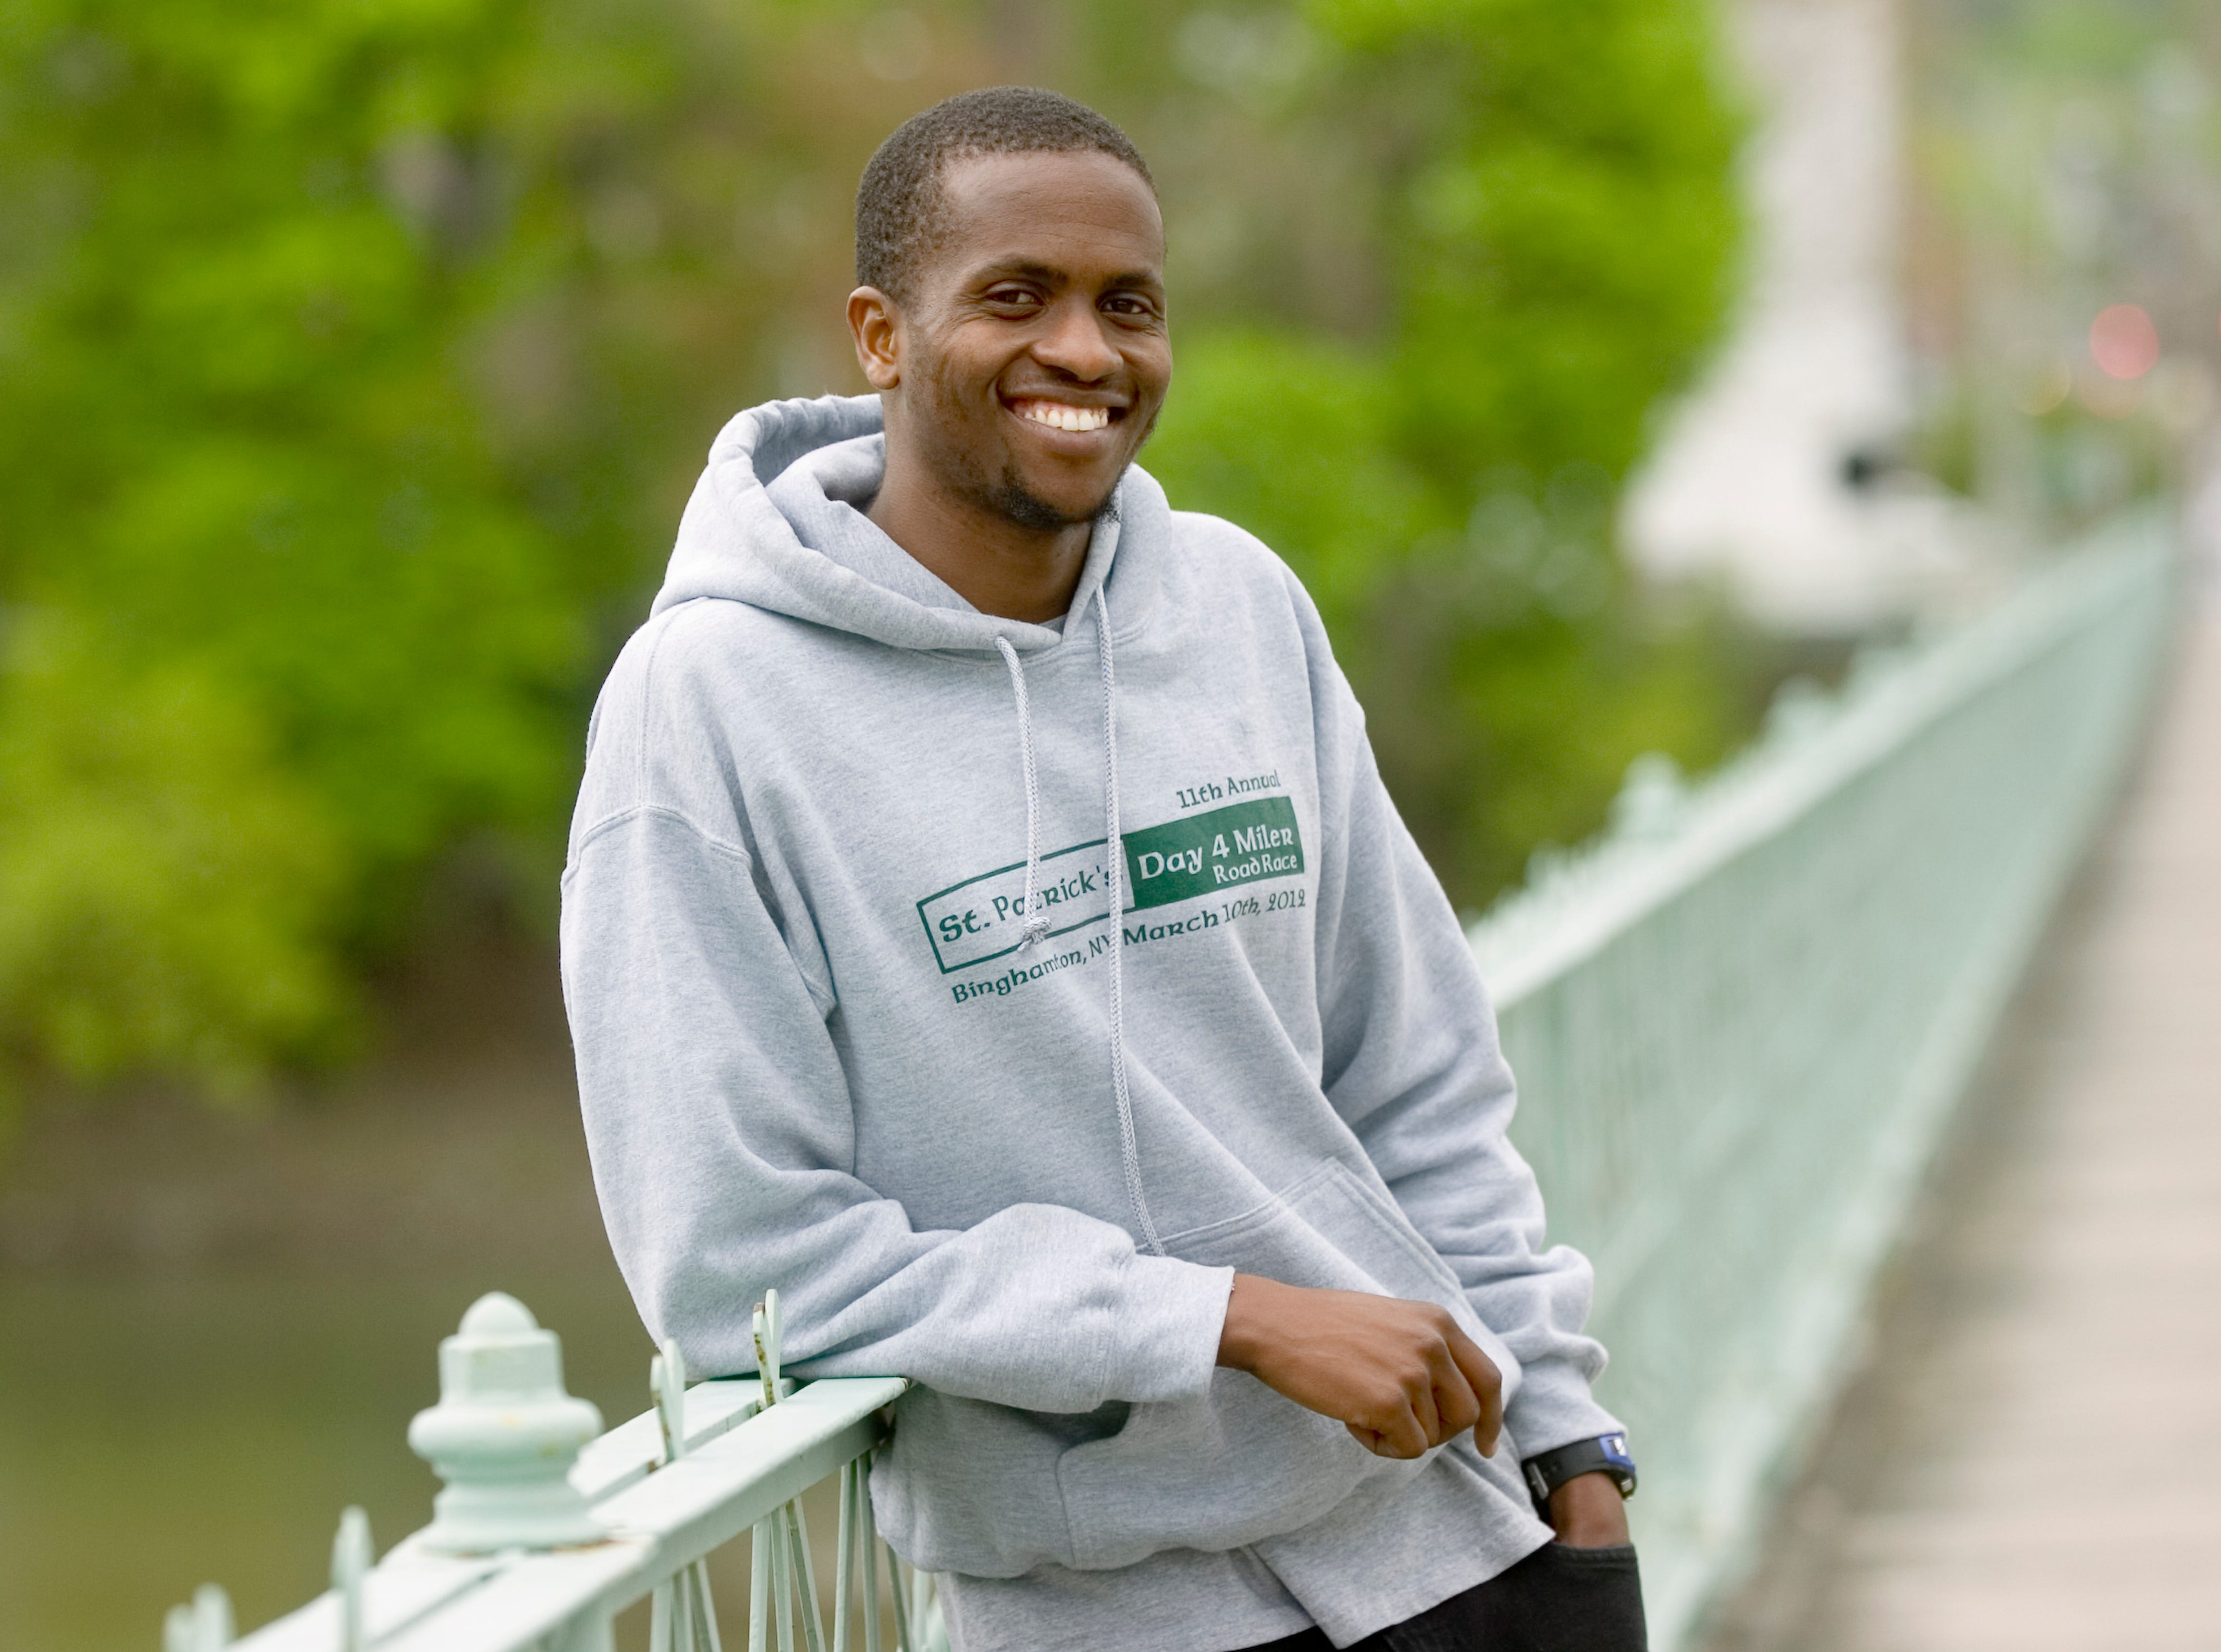 2012: Binghamton University graduate student Peter Kosgei plans to compete in the Greater Binghamton Chamber of Commerce's Bridge Run on Sunday.